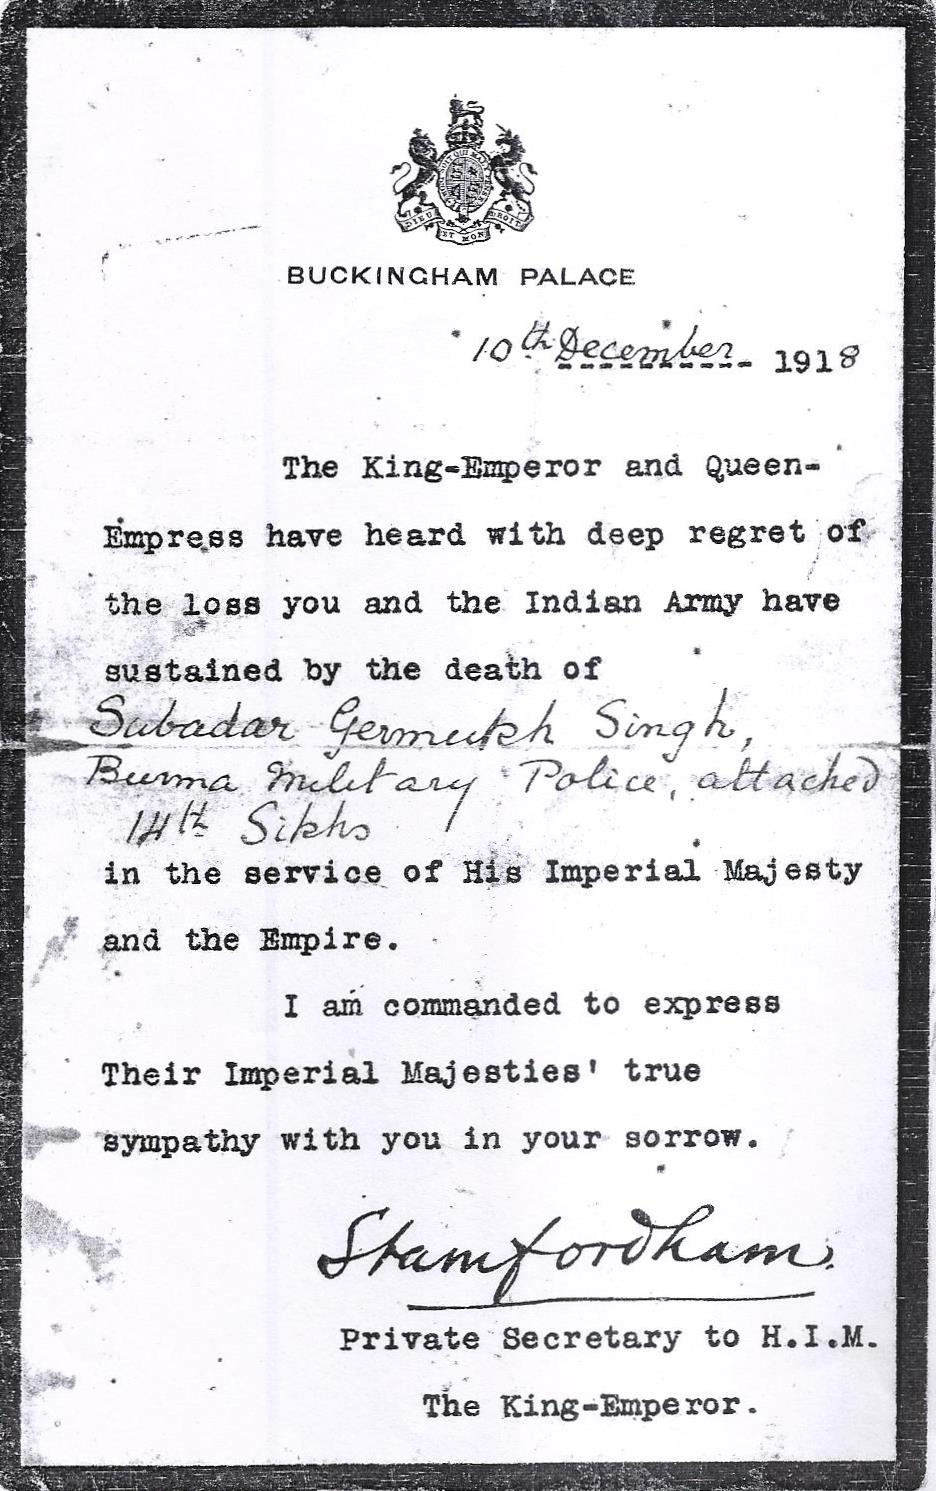 Letter about Gurmukh Singh's death, 10 December 1918